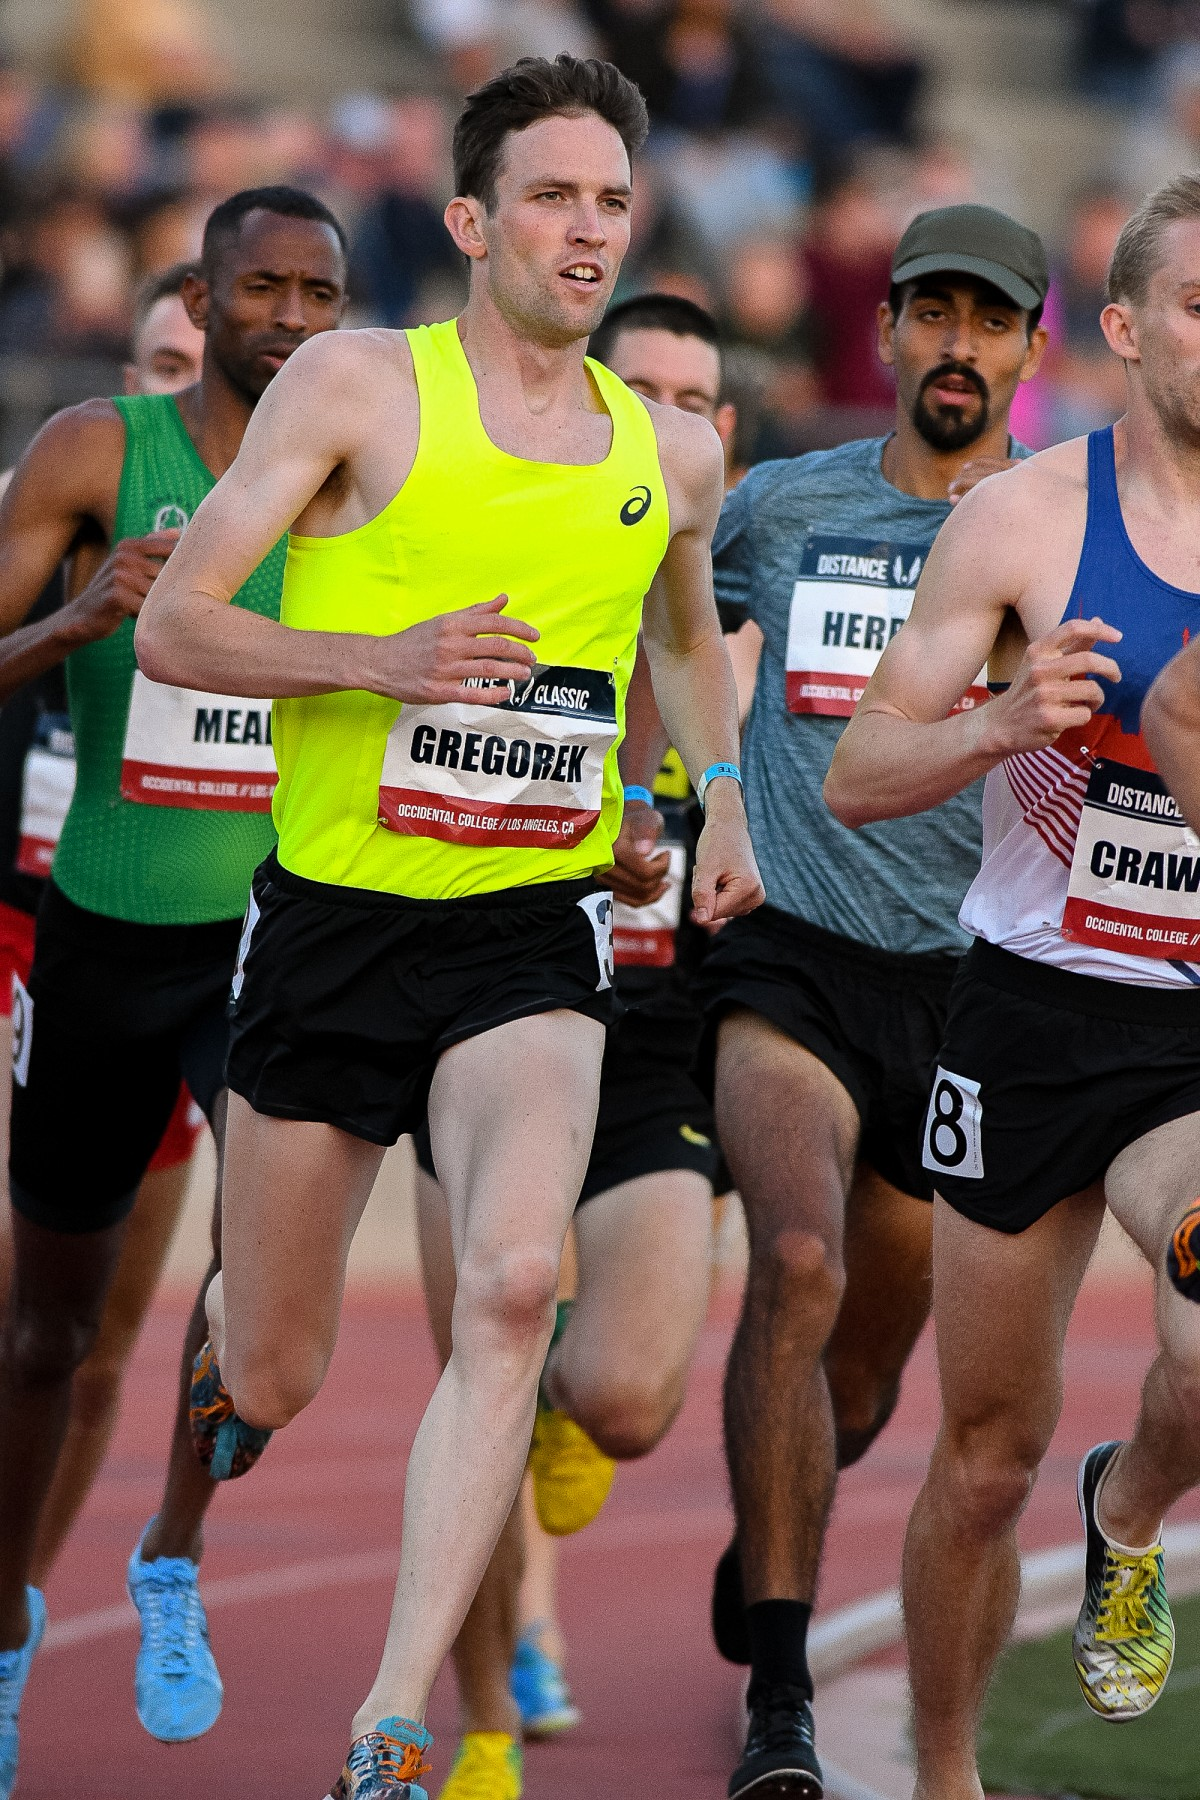 Daniel, in the olive hat, competes in Section 1 of the men's 1500m at the USATF Distance Classic.